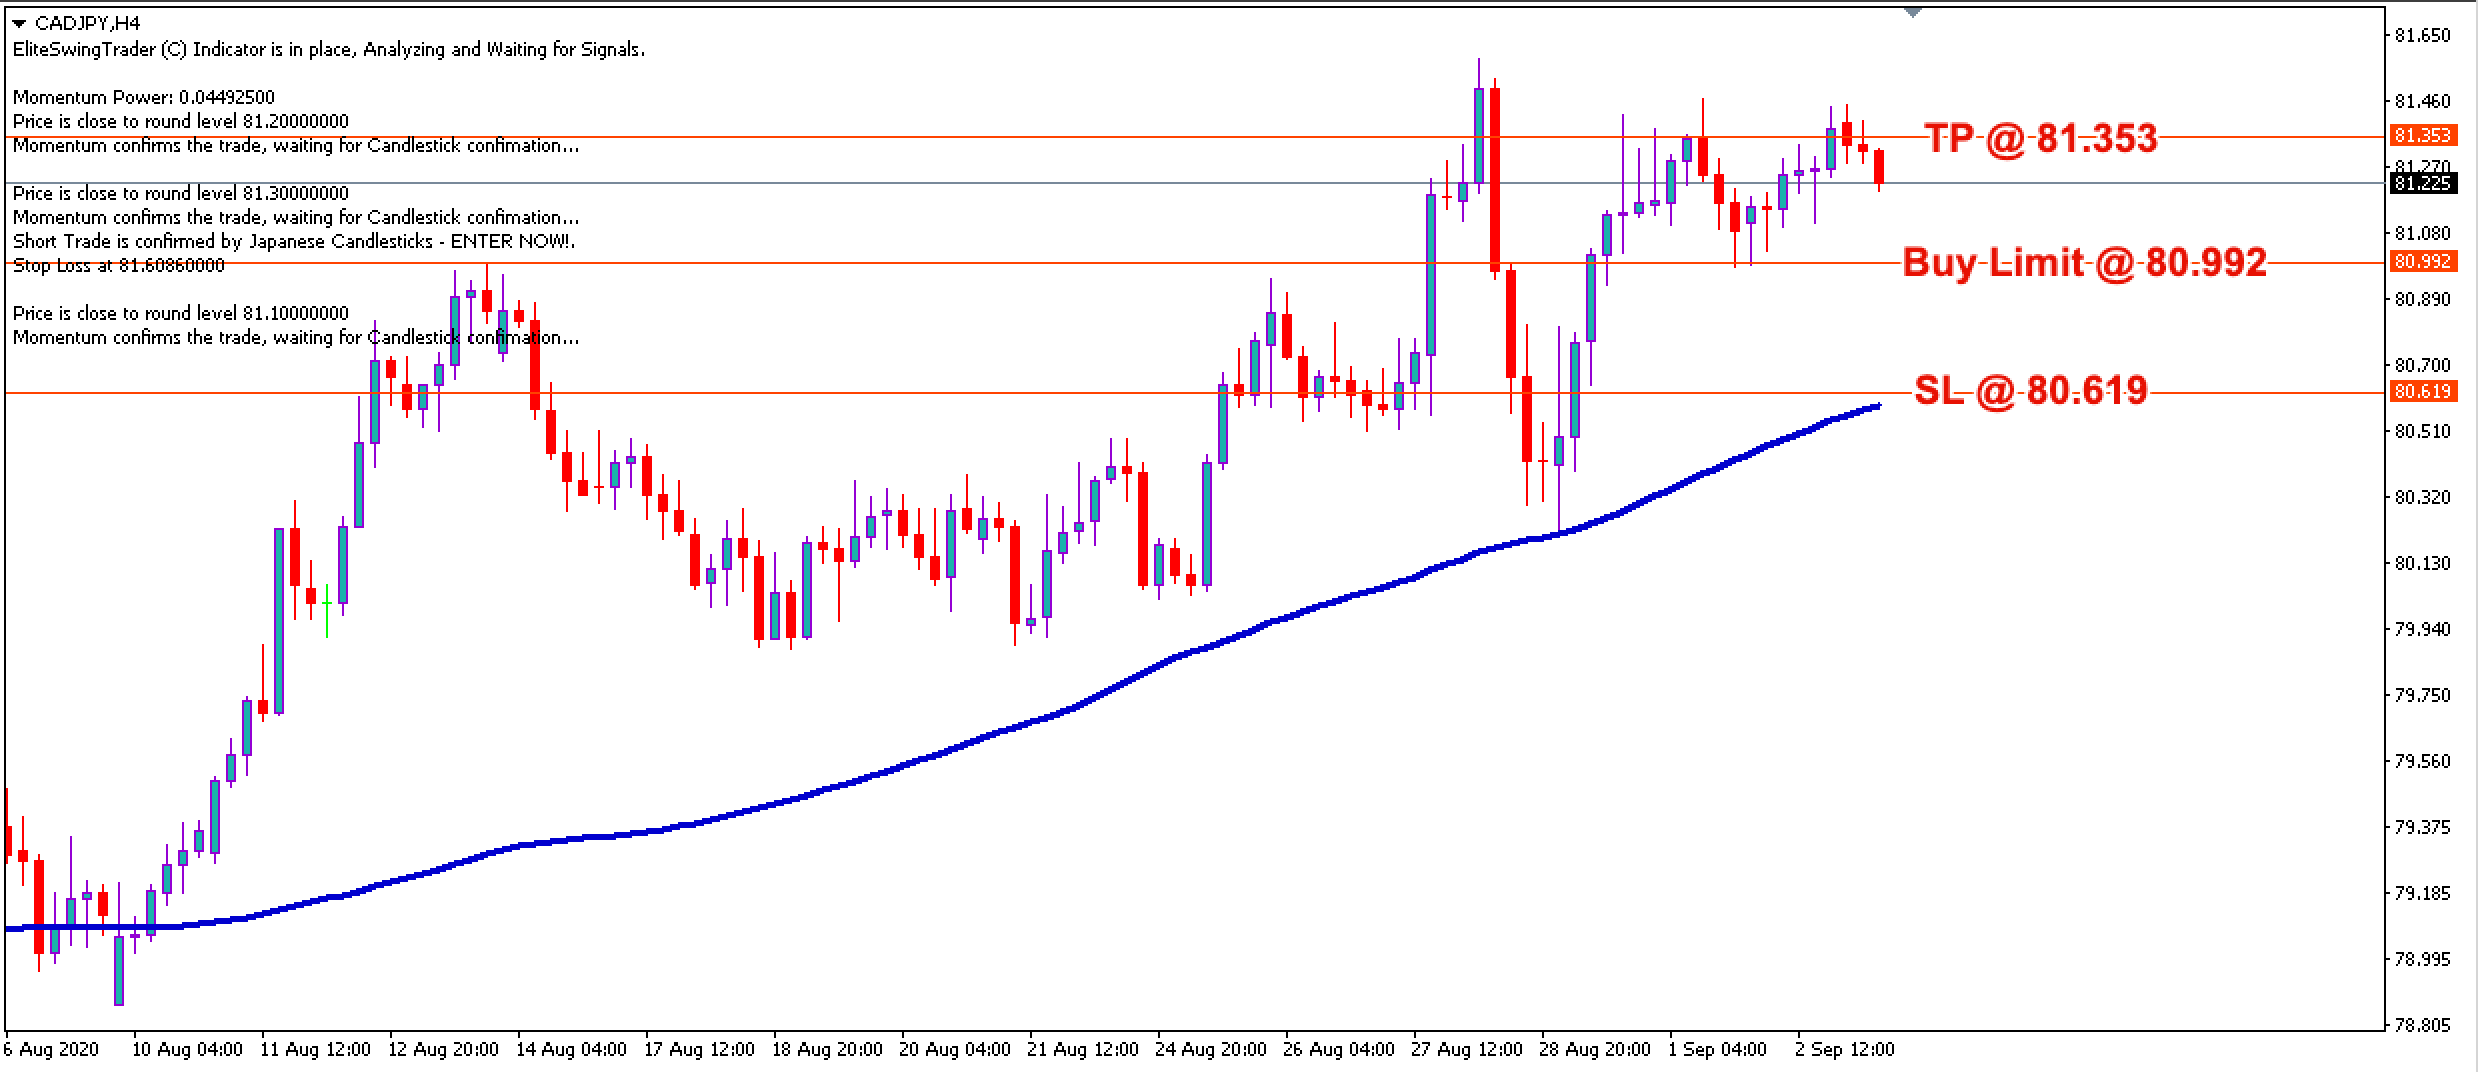 CAD/JPY Daily Price Forecast - 3rd Sept 2020